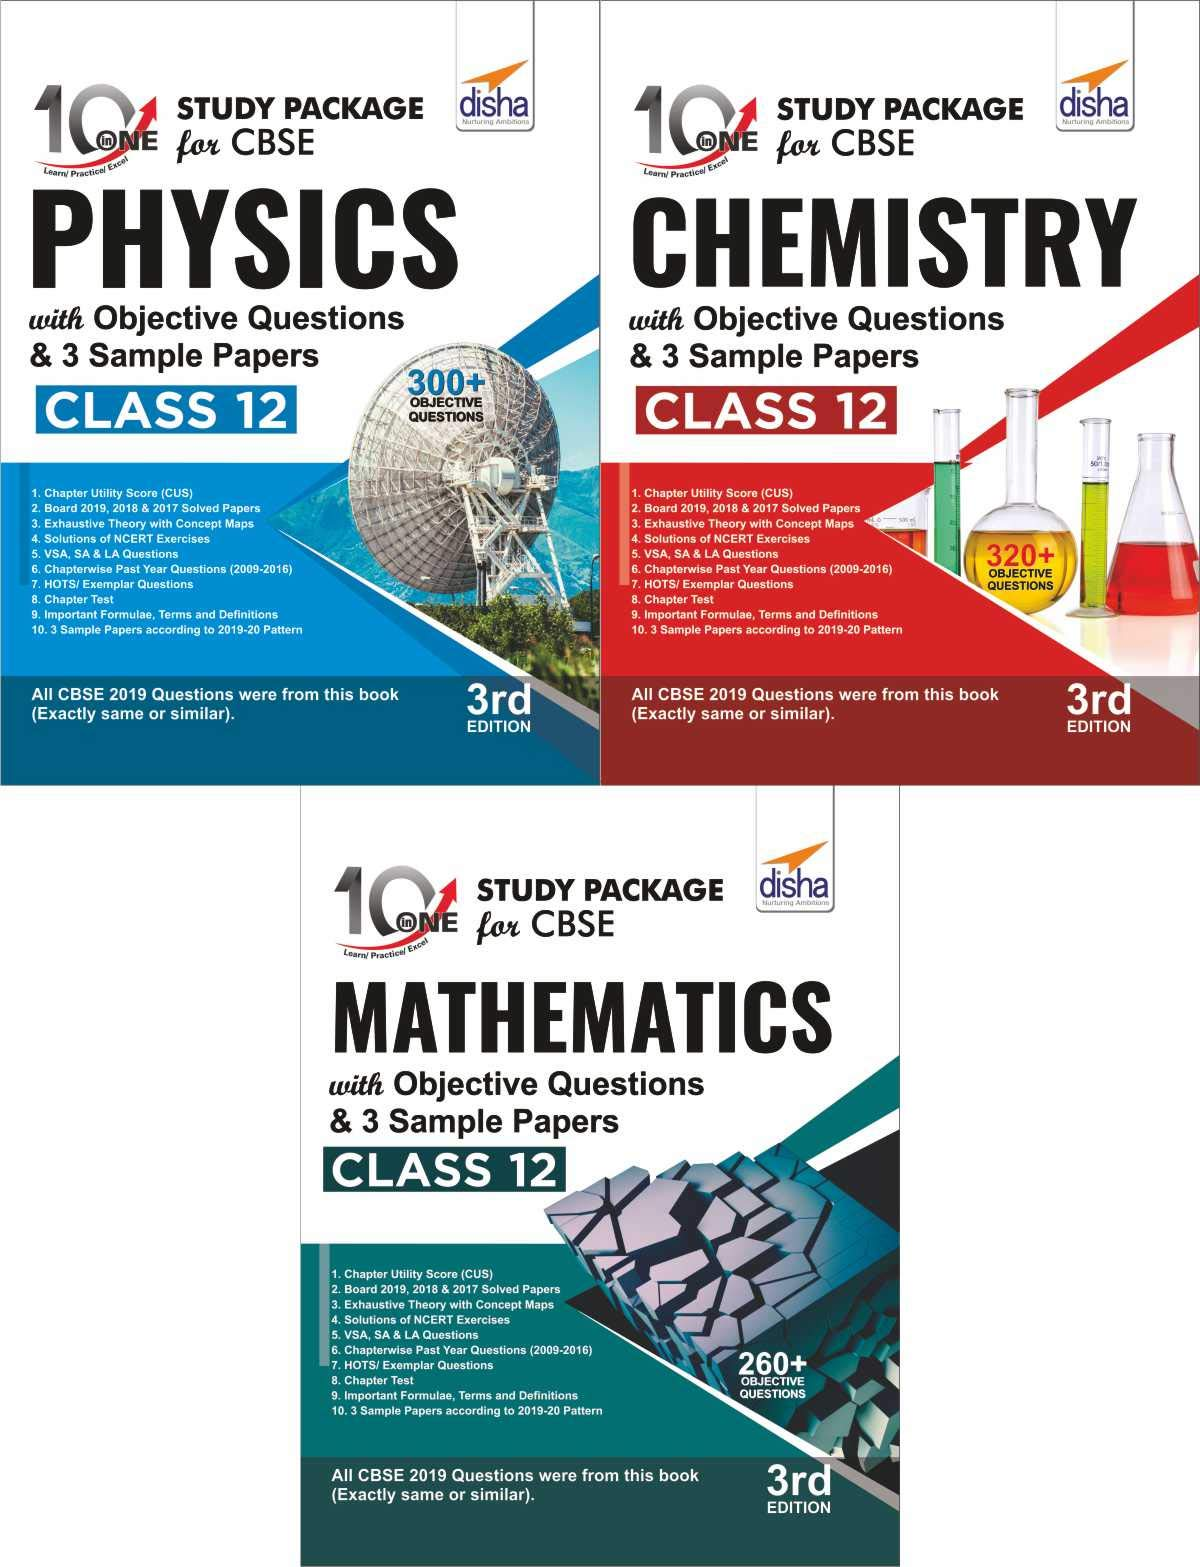 Combo 10 in One Study Package for CBSE Physics, Chemistry and